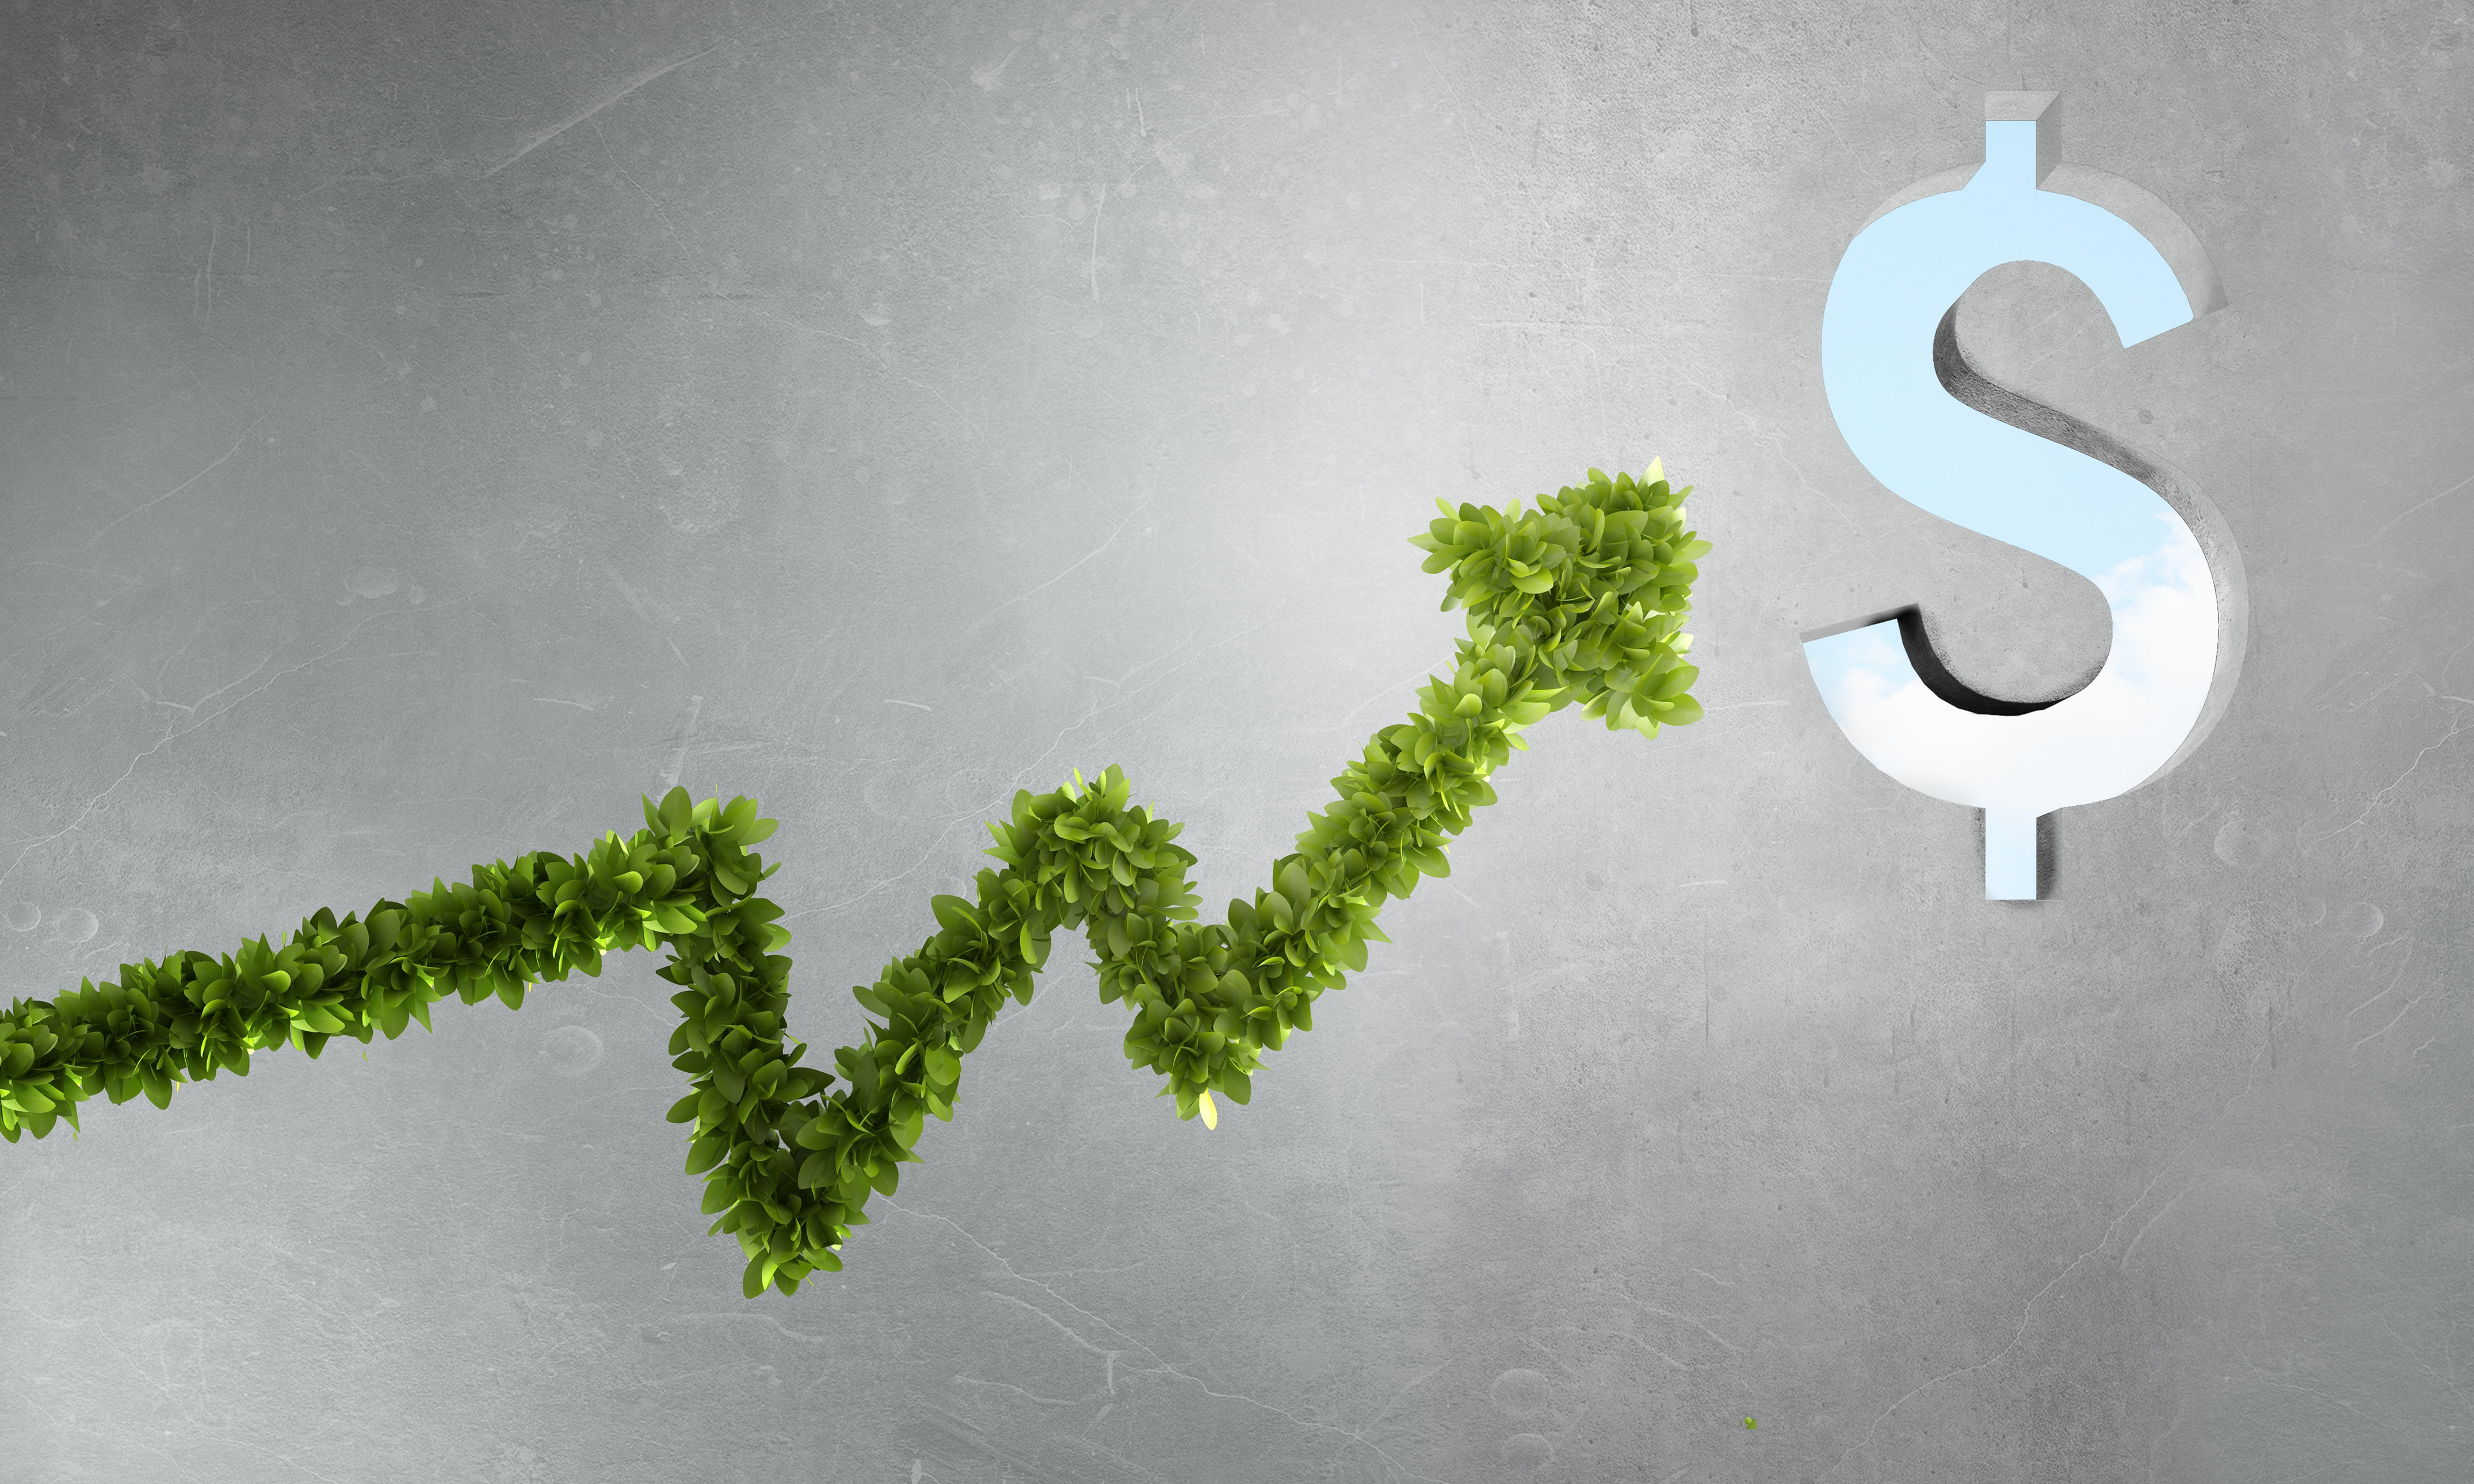 As the markets continue to lack volatility, a number of investors are attempting to find opportunities outside of the traditional growth stocks. This leads many of them to alternatives such as forex, options, etc. However, some investors are still attempting to find gains in the equity markets, and a number of them are doing so through looking for companies with exceptionally high dividend yields.